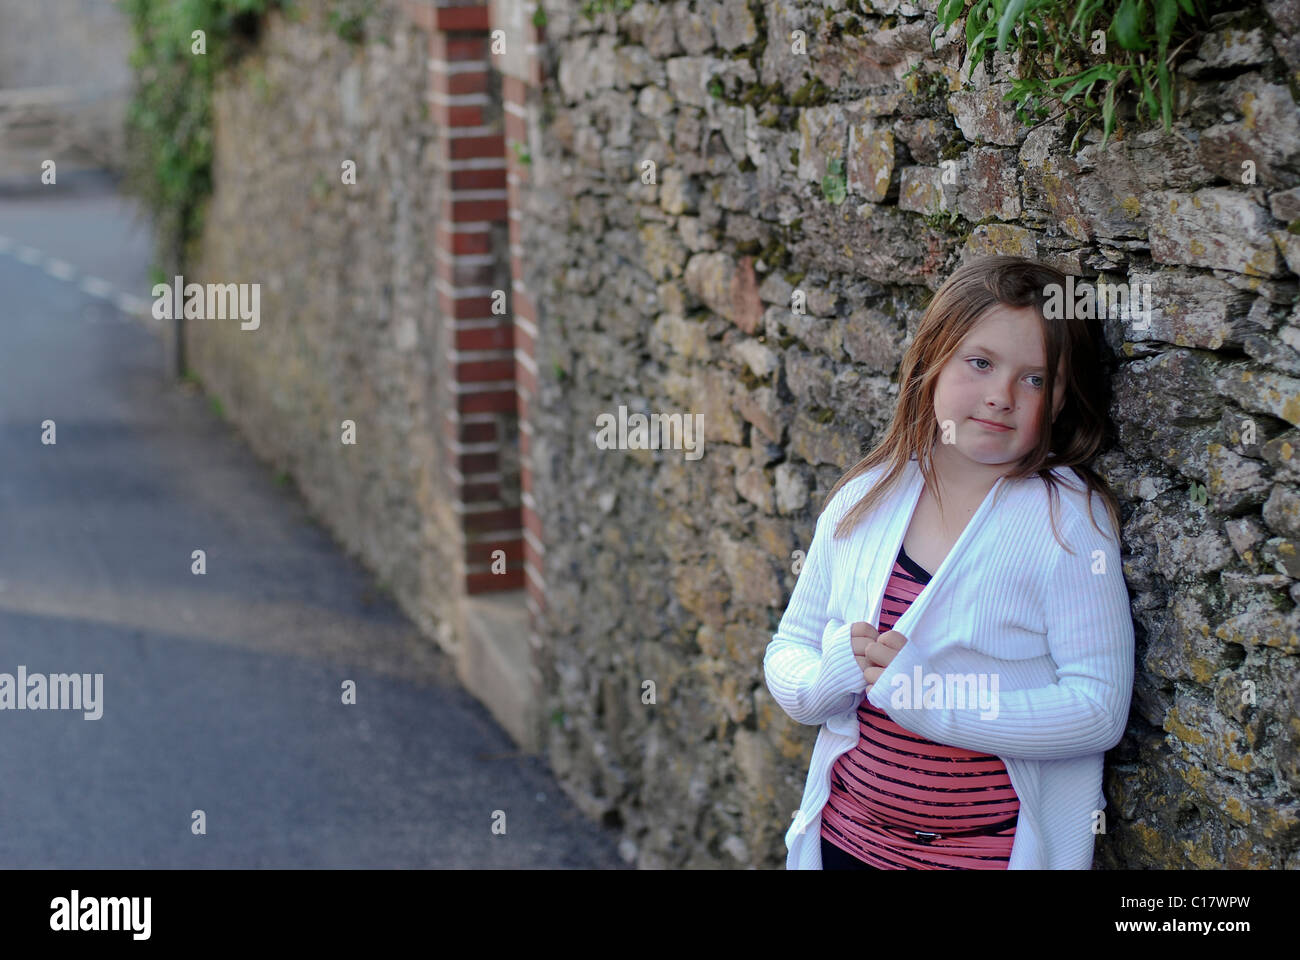 sad, moody, lonely  young girl, orphan, welfare, poor, lost - Stock Image